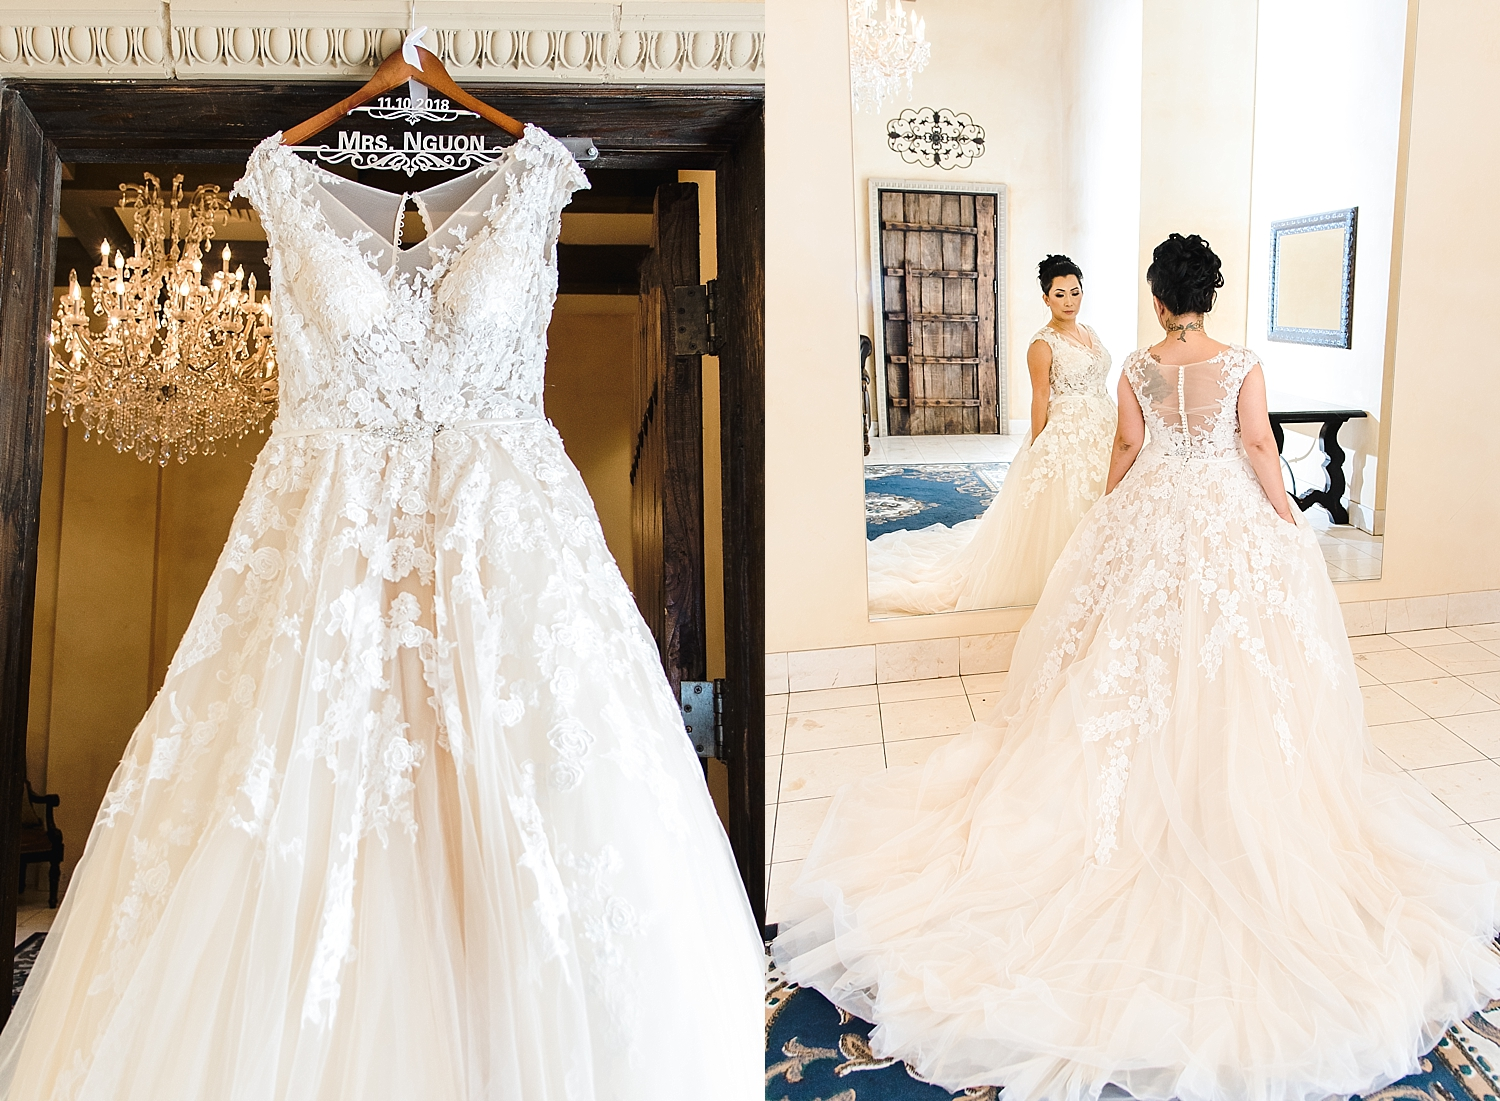 Hom's blush wedding dress, photographed in bridal room at the Ashley Castle in Chandler, Arizona, by Jade Min of Jade Min Photography.